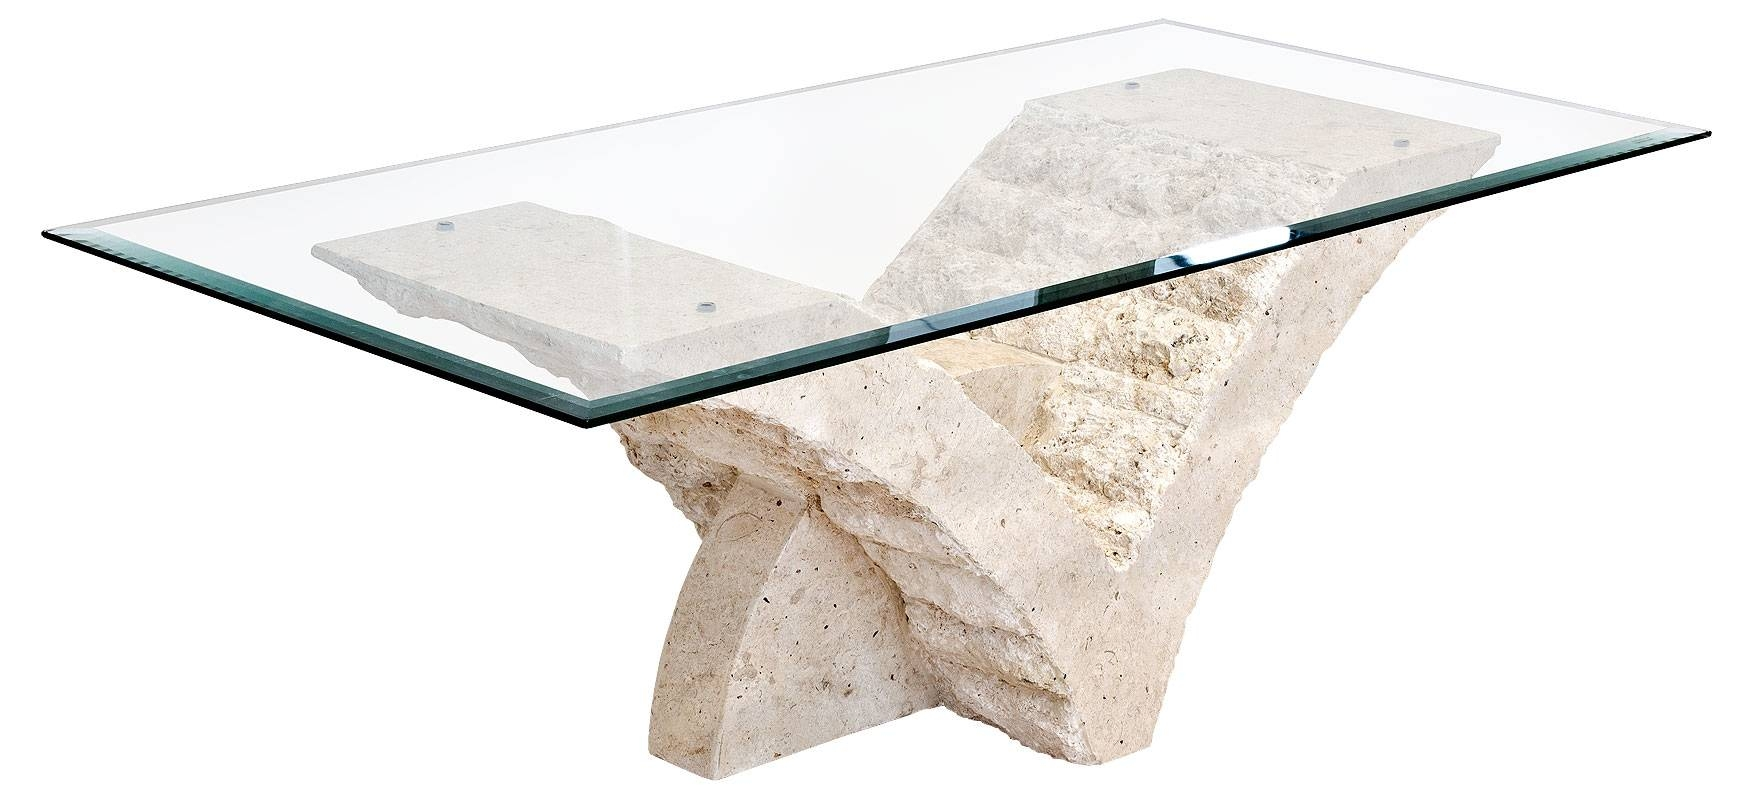 Mactan-Stone-And-Glass-Seagull-Coffee-Table inside Glass and Stone Coffee Table (Image 9 of 15)